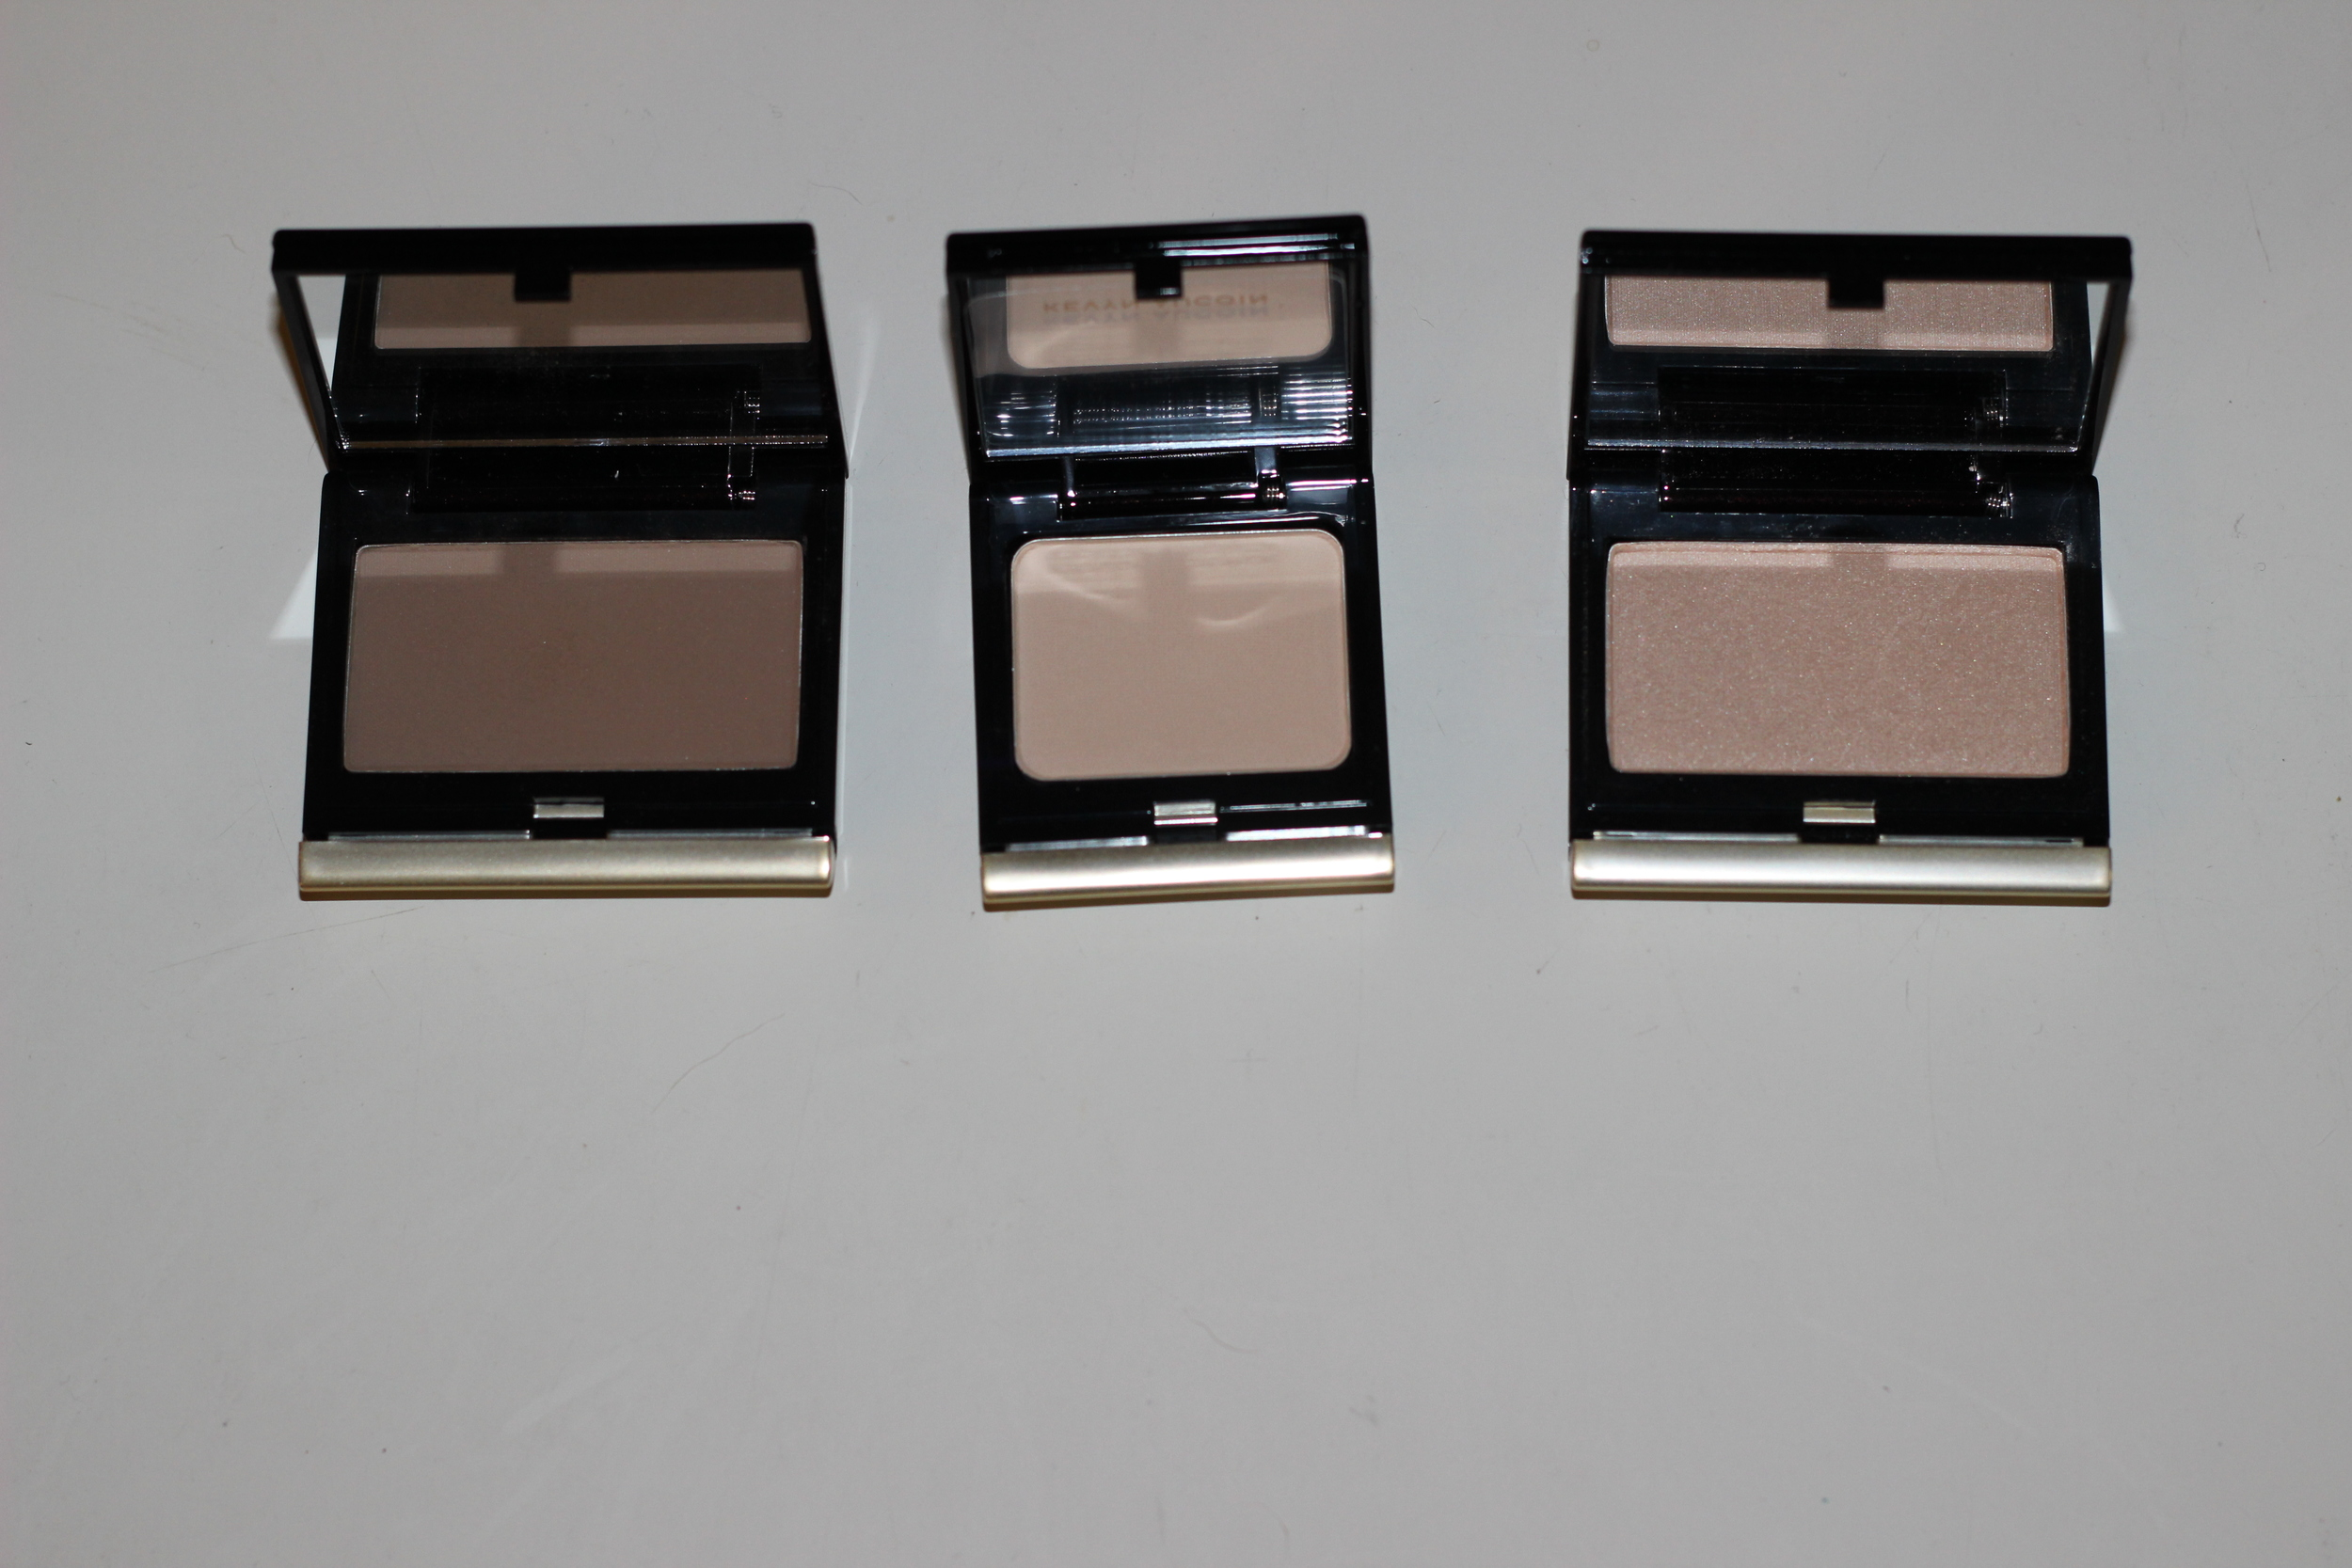 Left to Right: Sculpting Powder in Medium, Single Eyeshadow in Tusk, The Celestial Powder in Candlelight